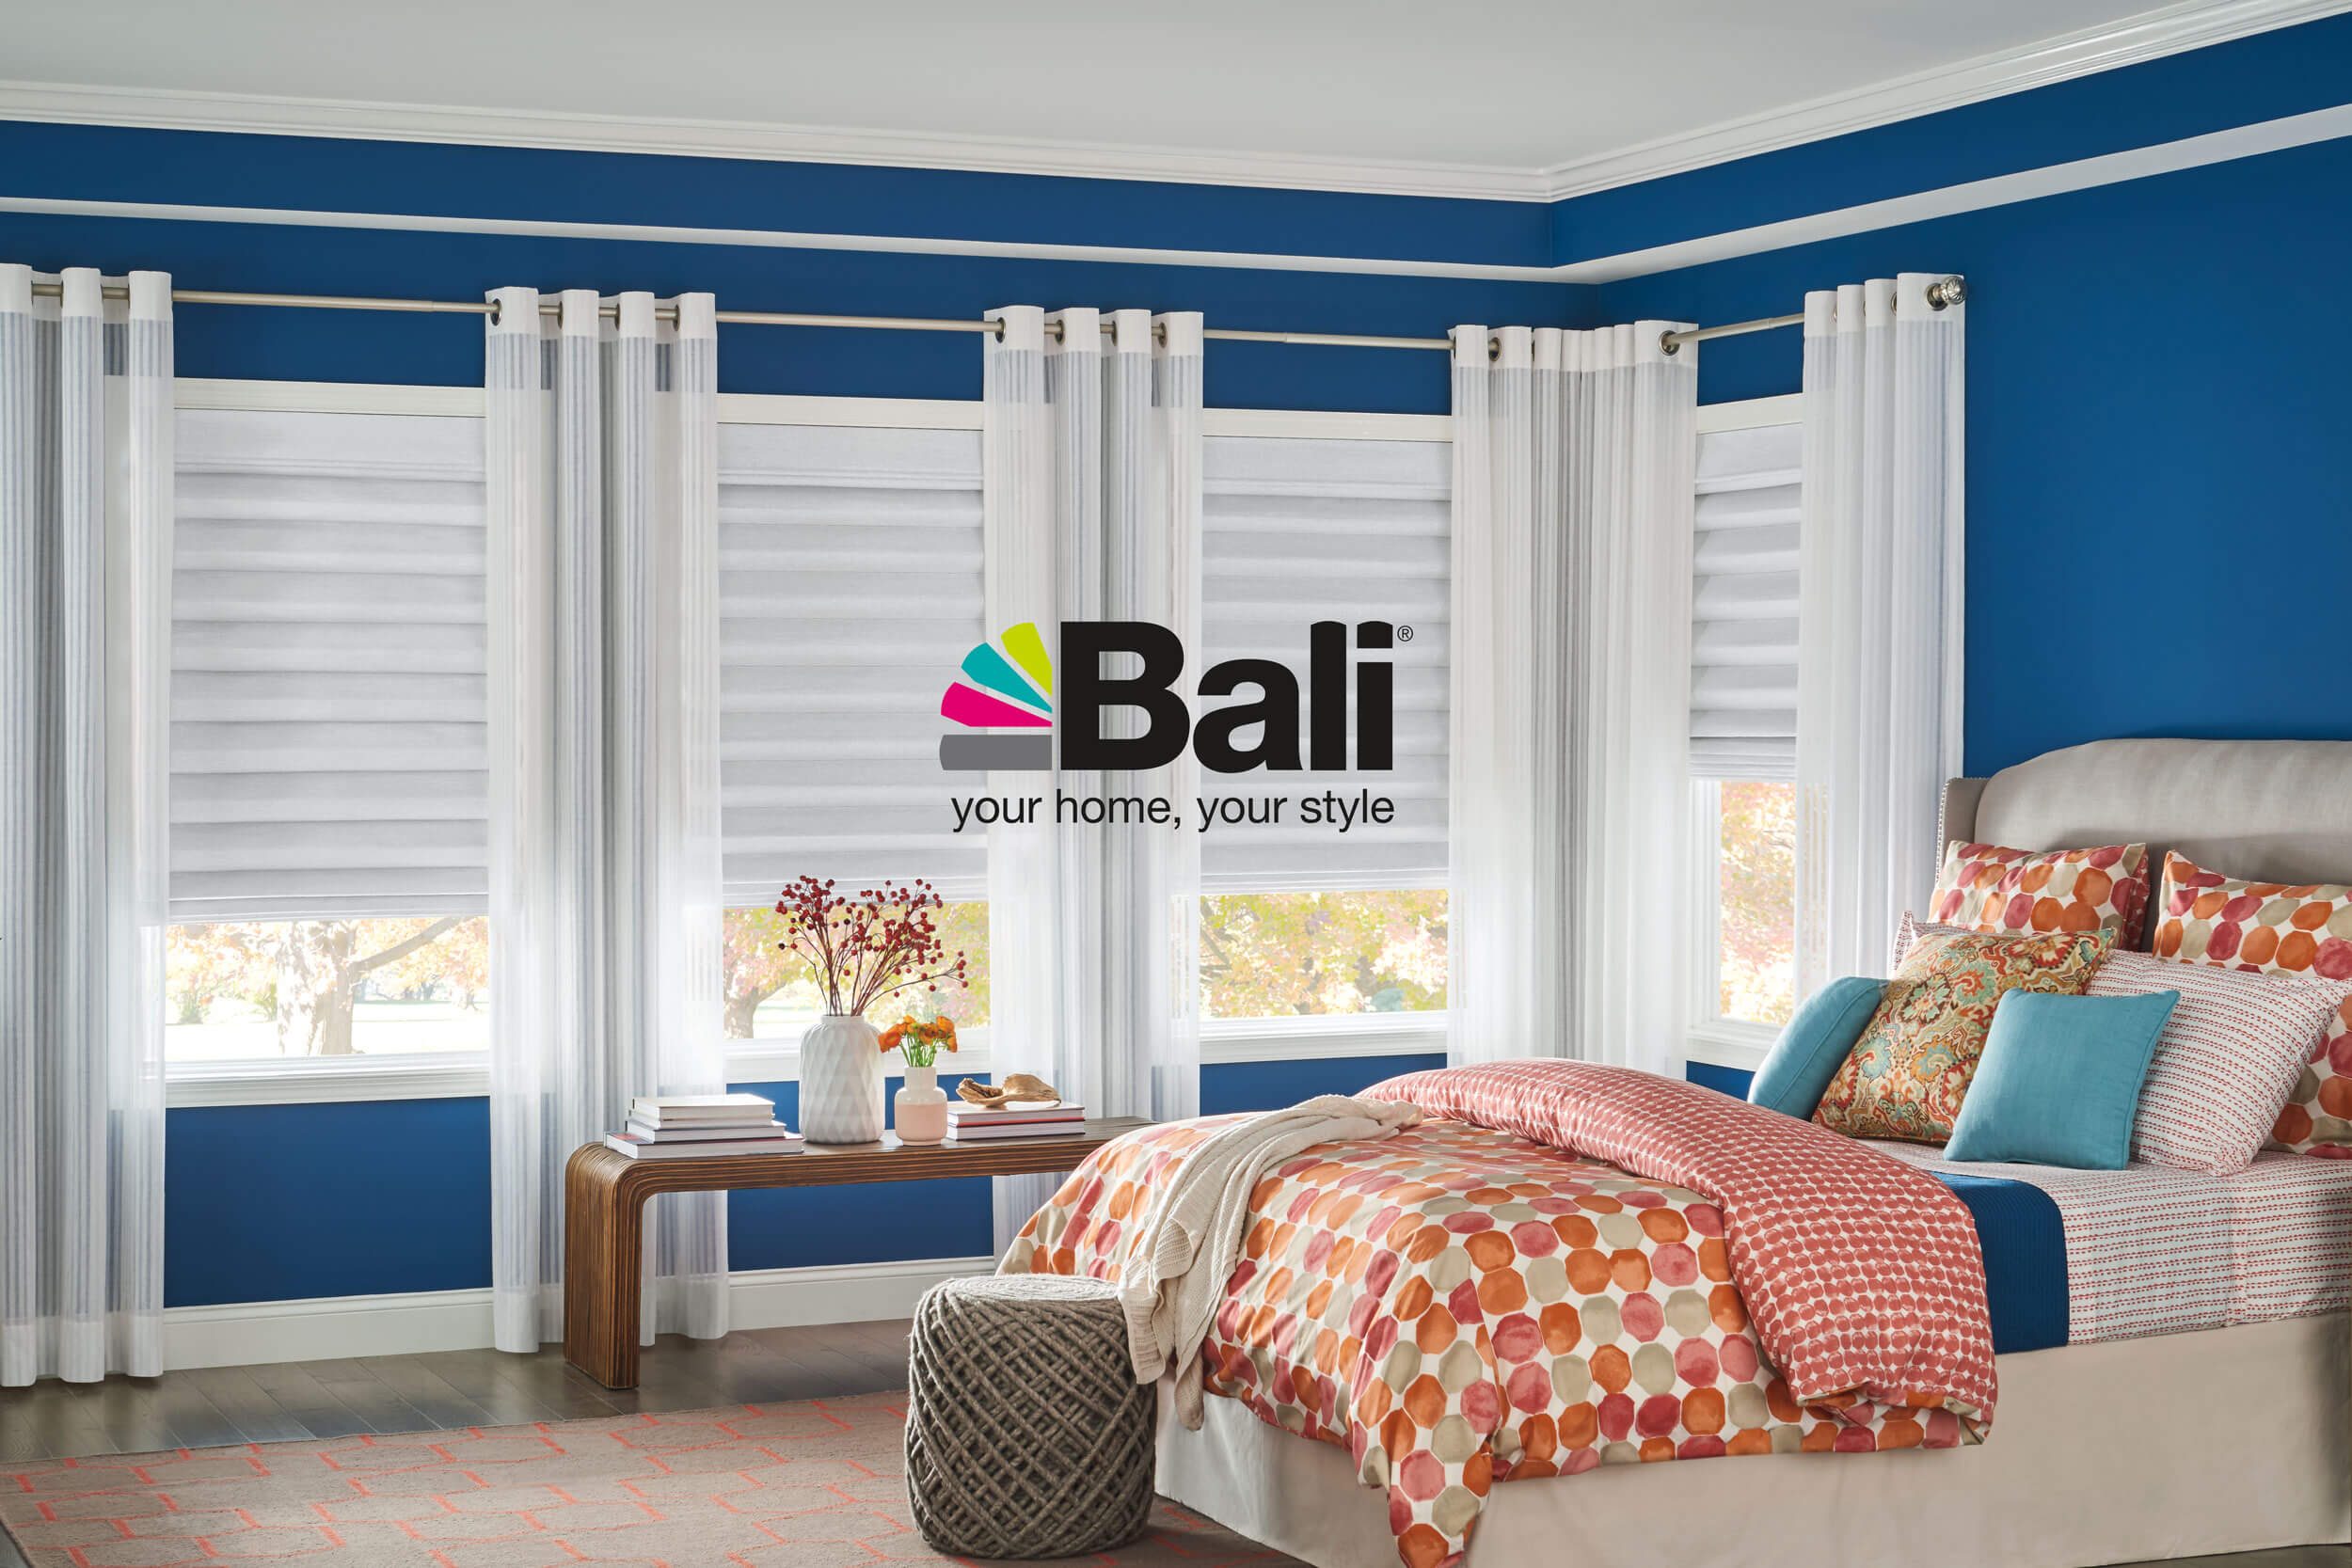 Bali Roman Shades and Drapery in a bedroom, with the Bali logo overlaid